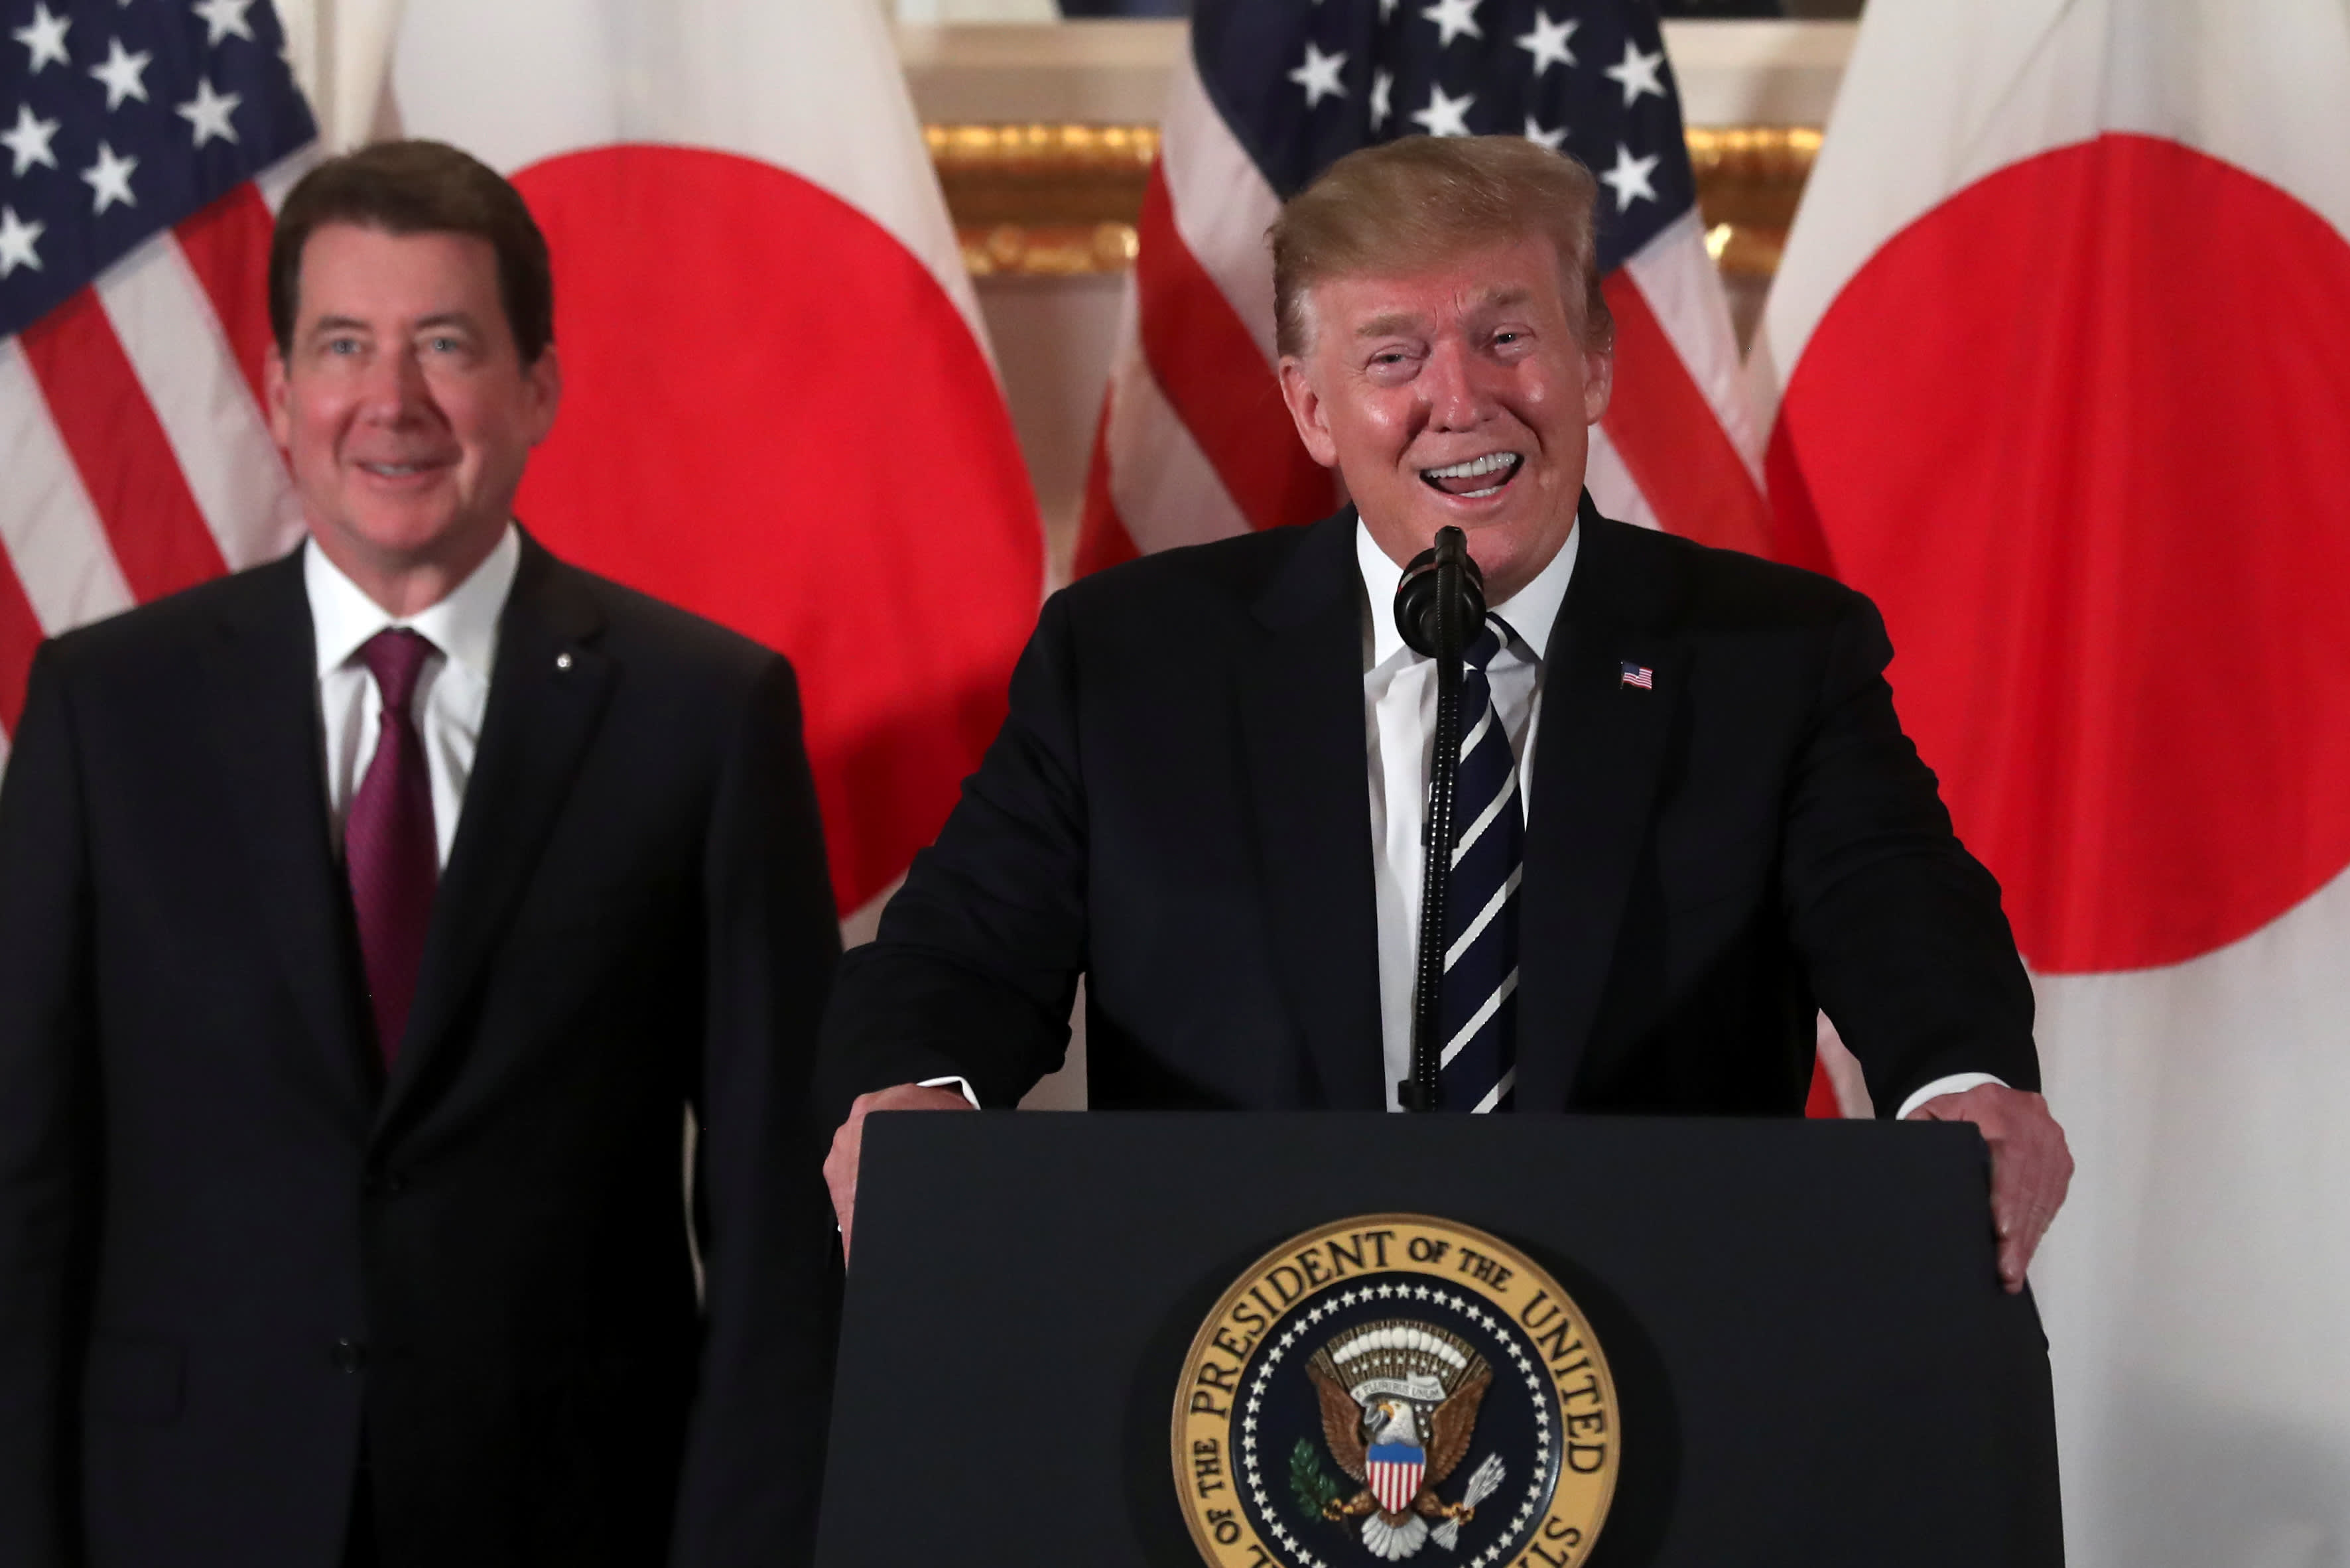 Trump takes dig at Japan for 'substantial' trade advantage and calls for more investment in US